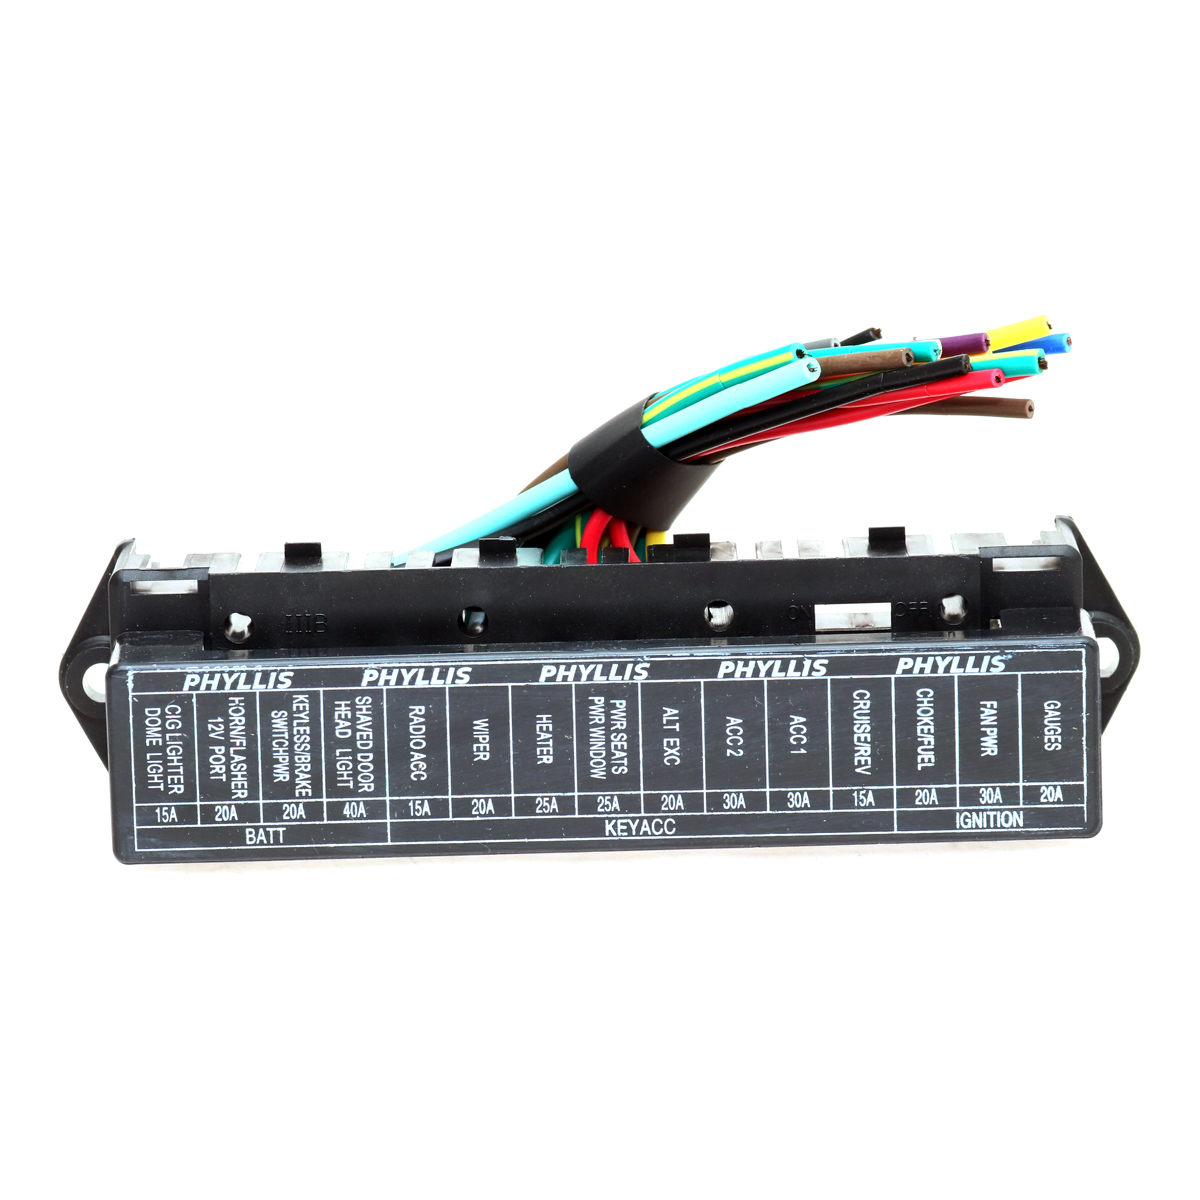 1986 Nissan Truck Fuse Box Wiring Library 720 Cover Block Assy Fit For 80 89 Datsun